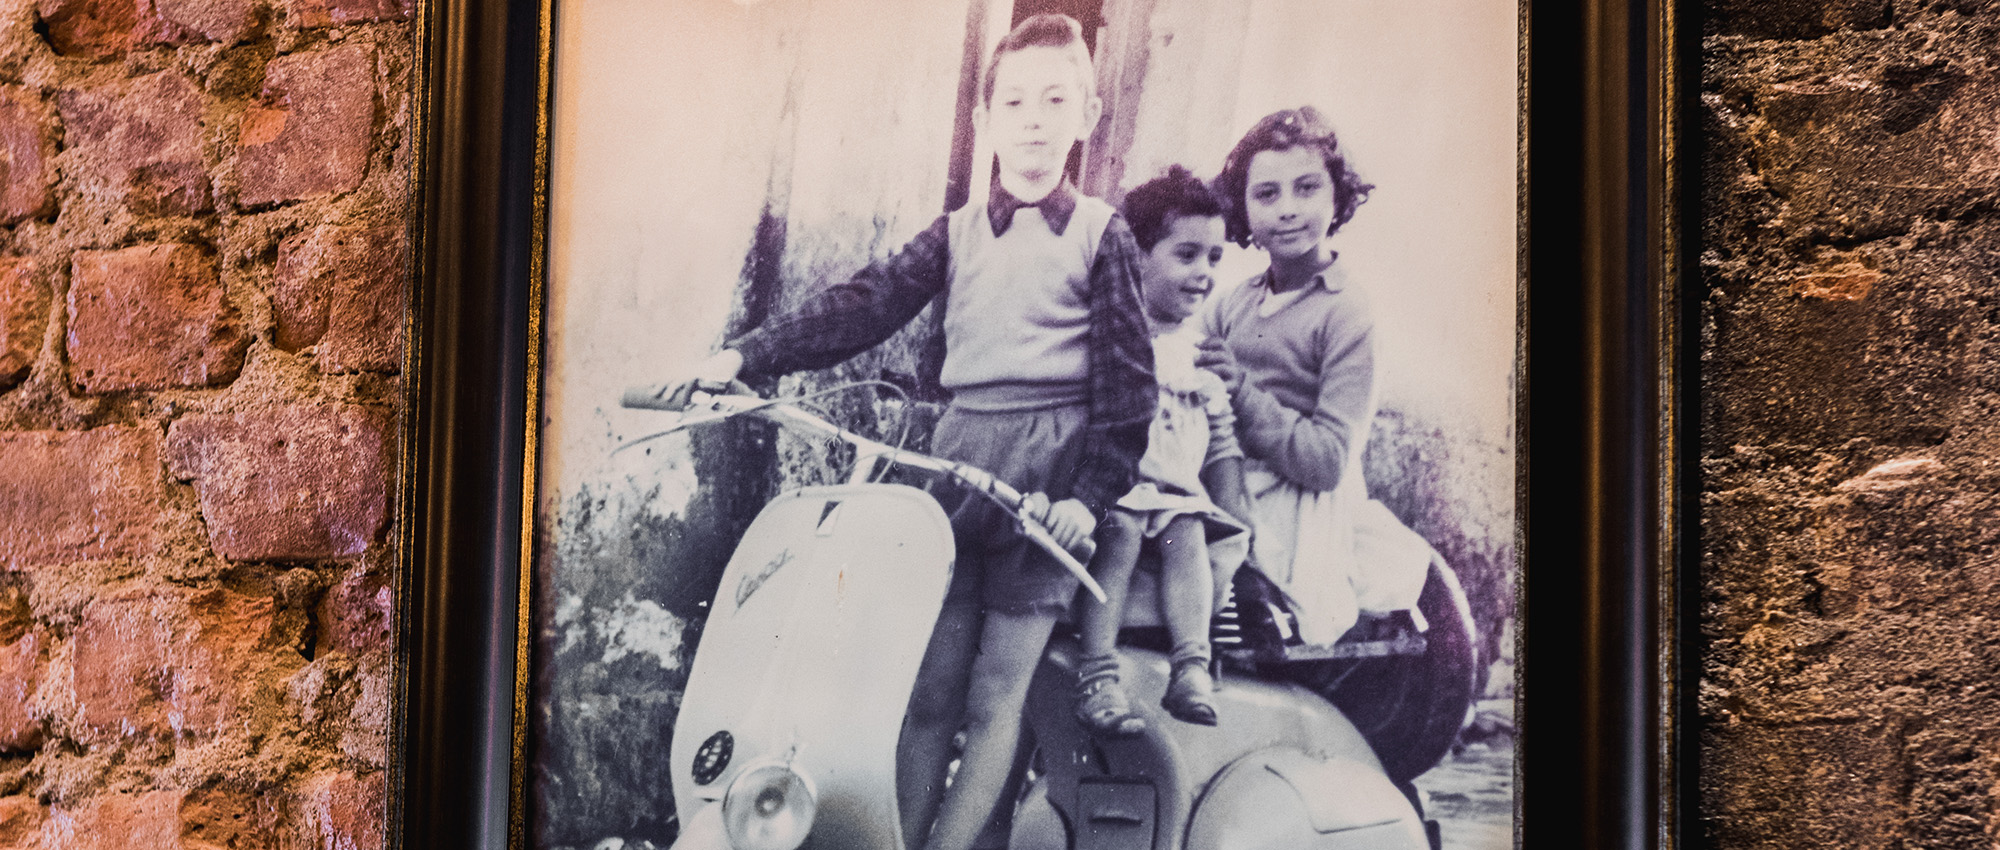 three children on a moped